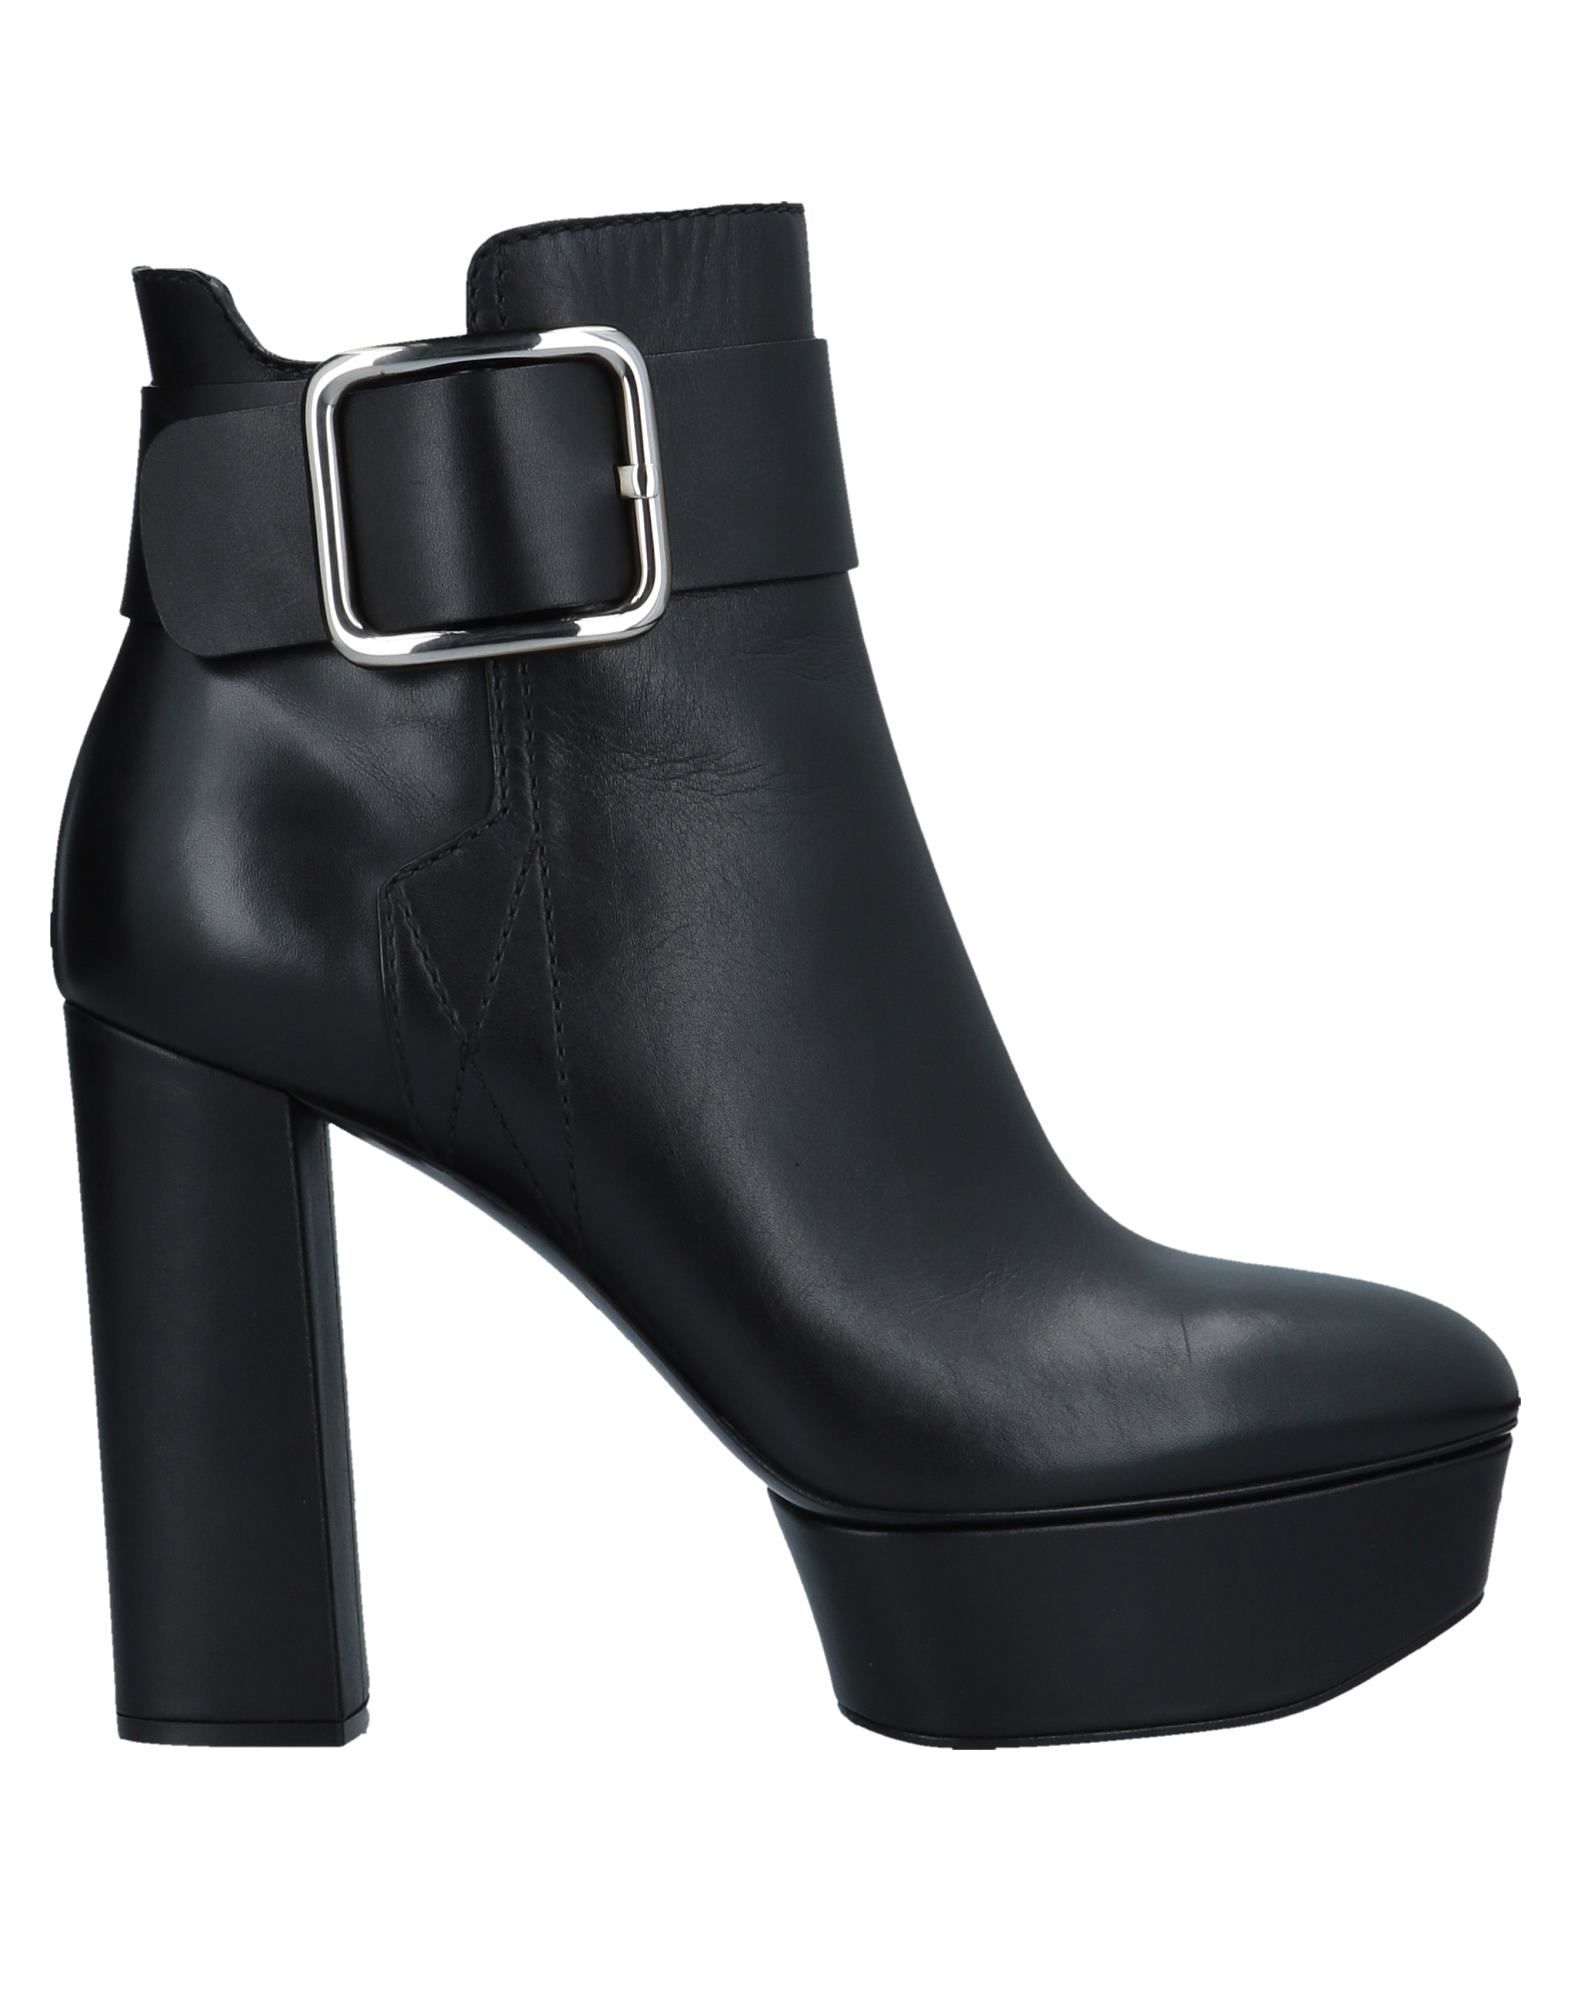 Casadei Ankle Boot Boots - Women Casadei Ankle Boots Boot online on  Australia - 11554595NK 28be78